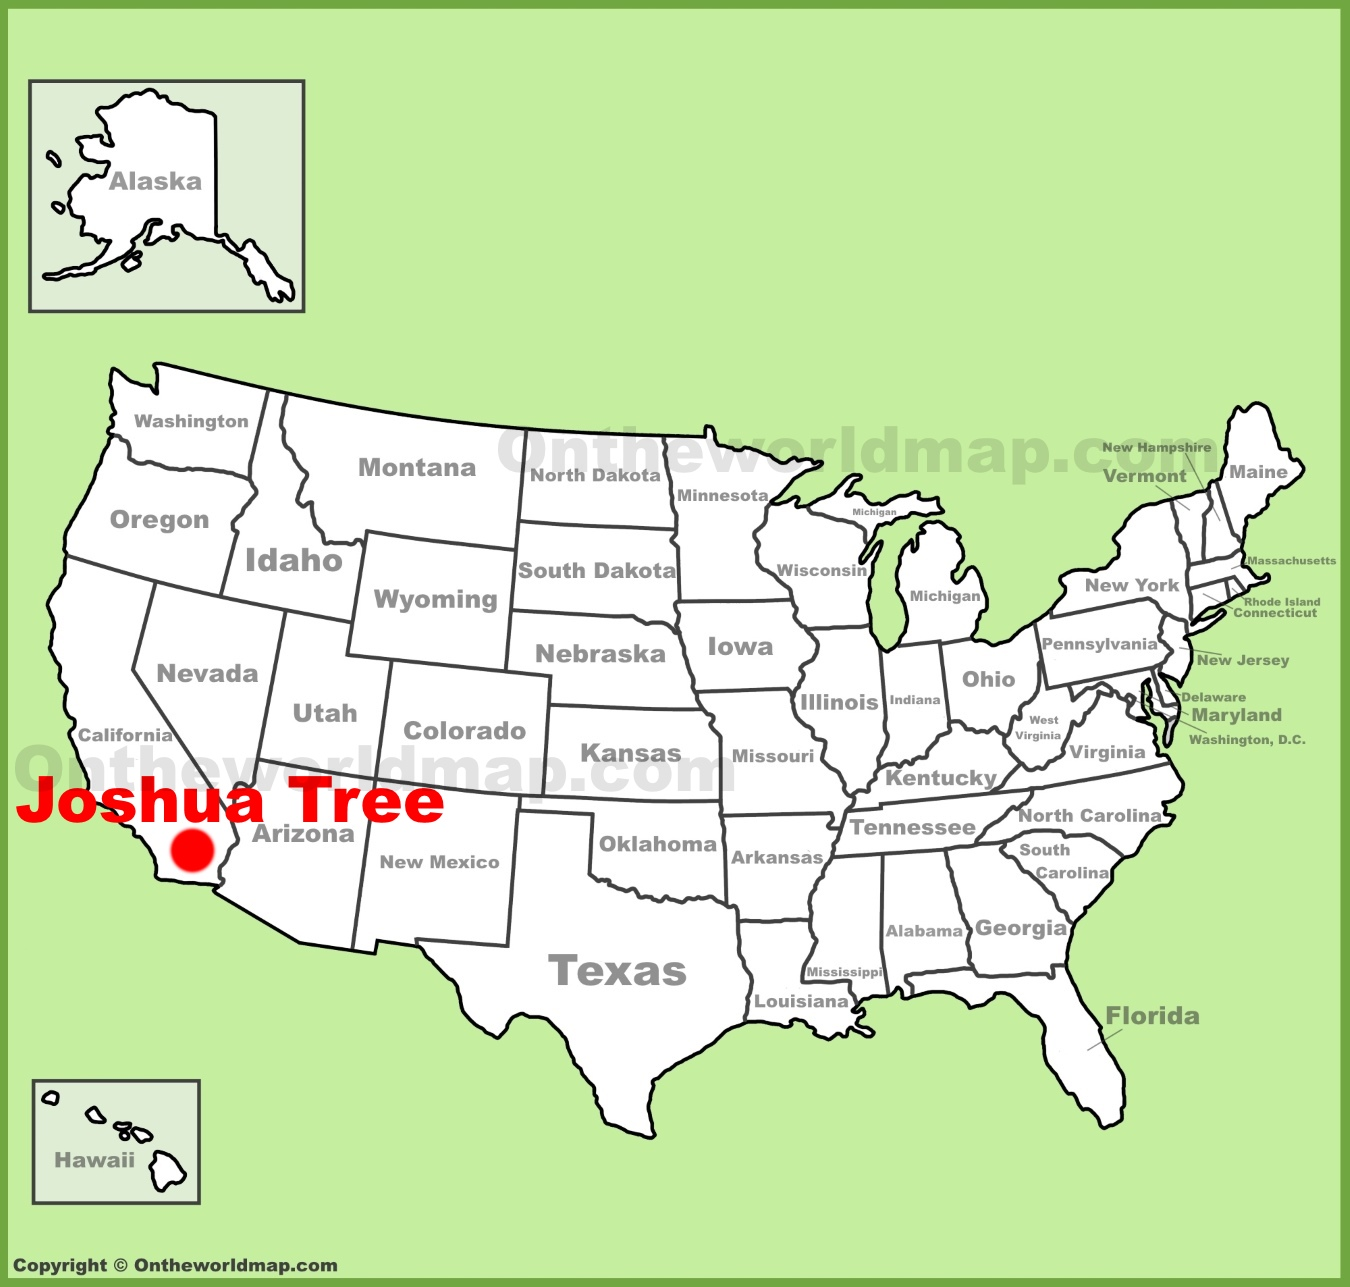 full size · joshua tree location map. joshua tree maps  usa  maps of joshua tree national park